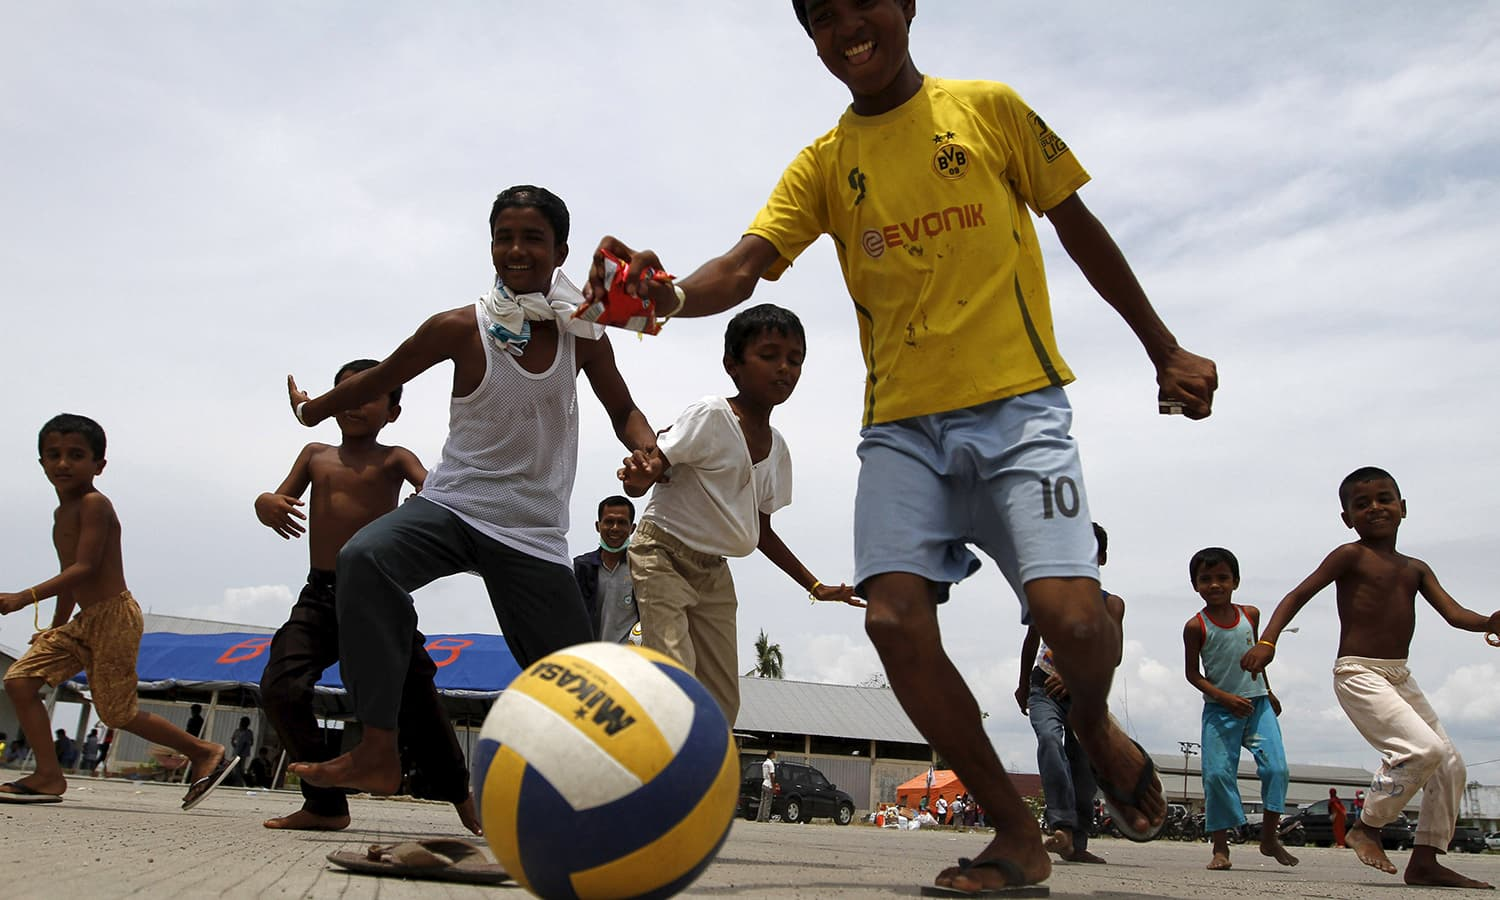 Rohingya children, who arrived in Indonesia by boat, play soccer outside a shelter in Kuala Langsa, in Indonesia's Aceh Province.